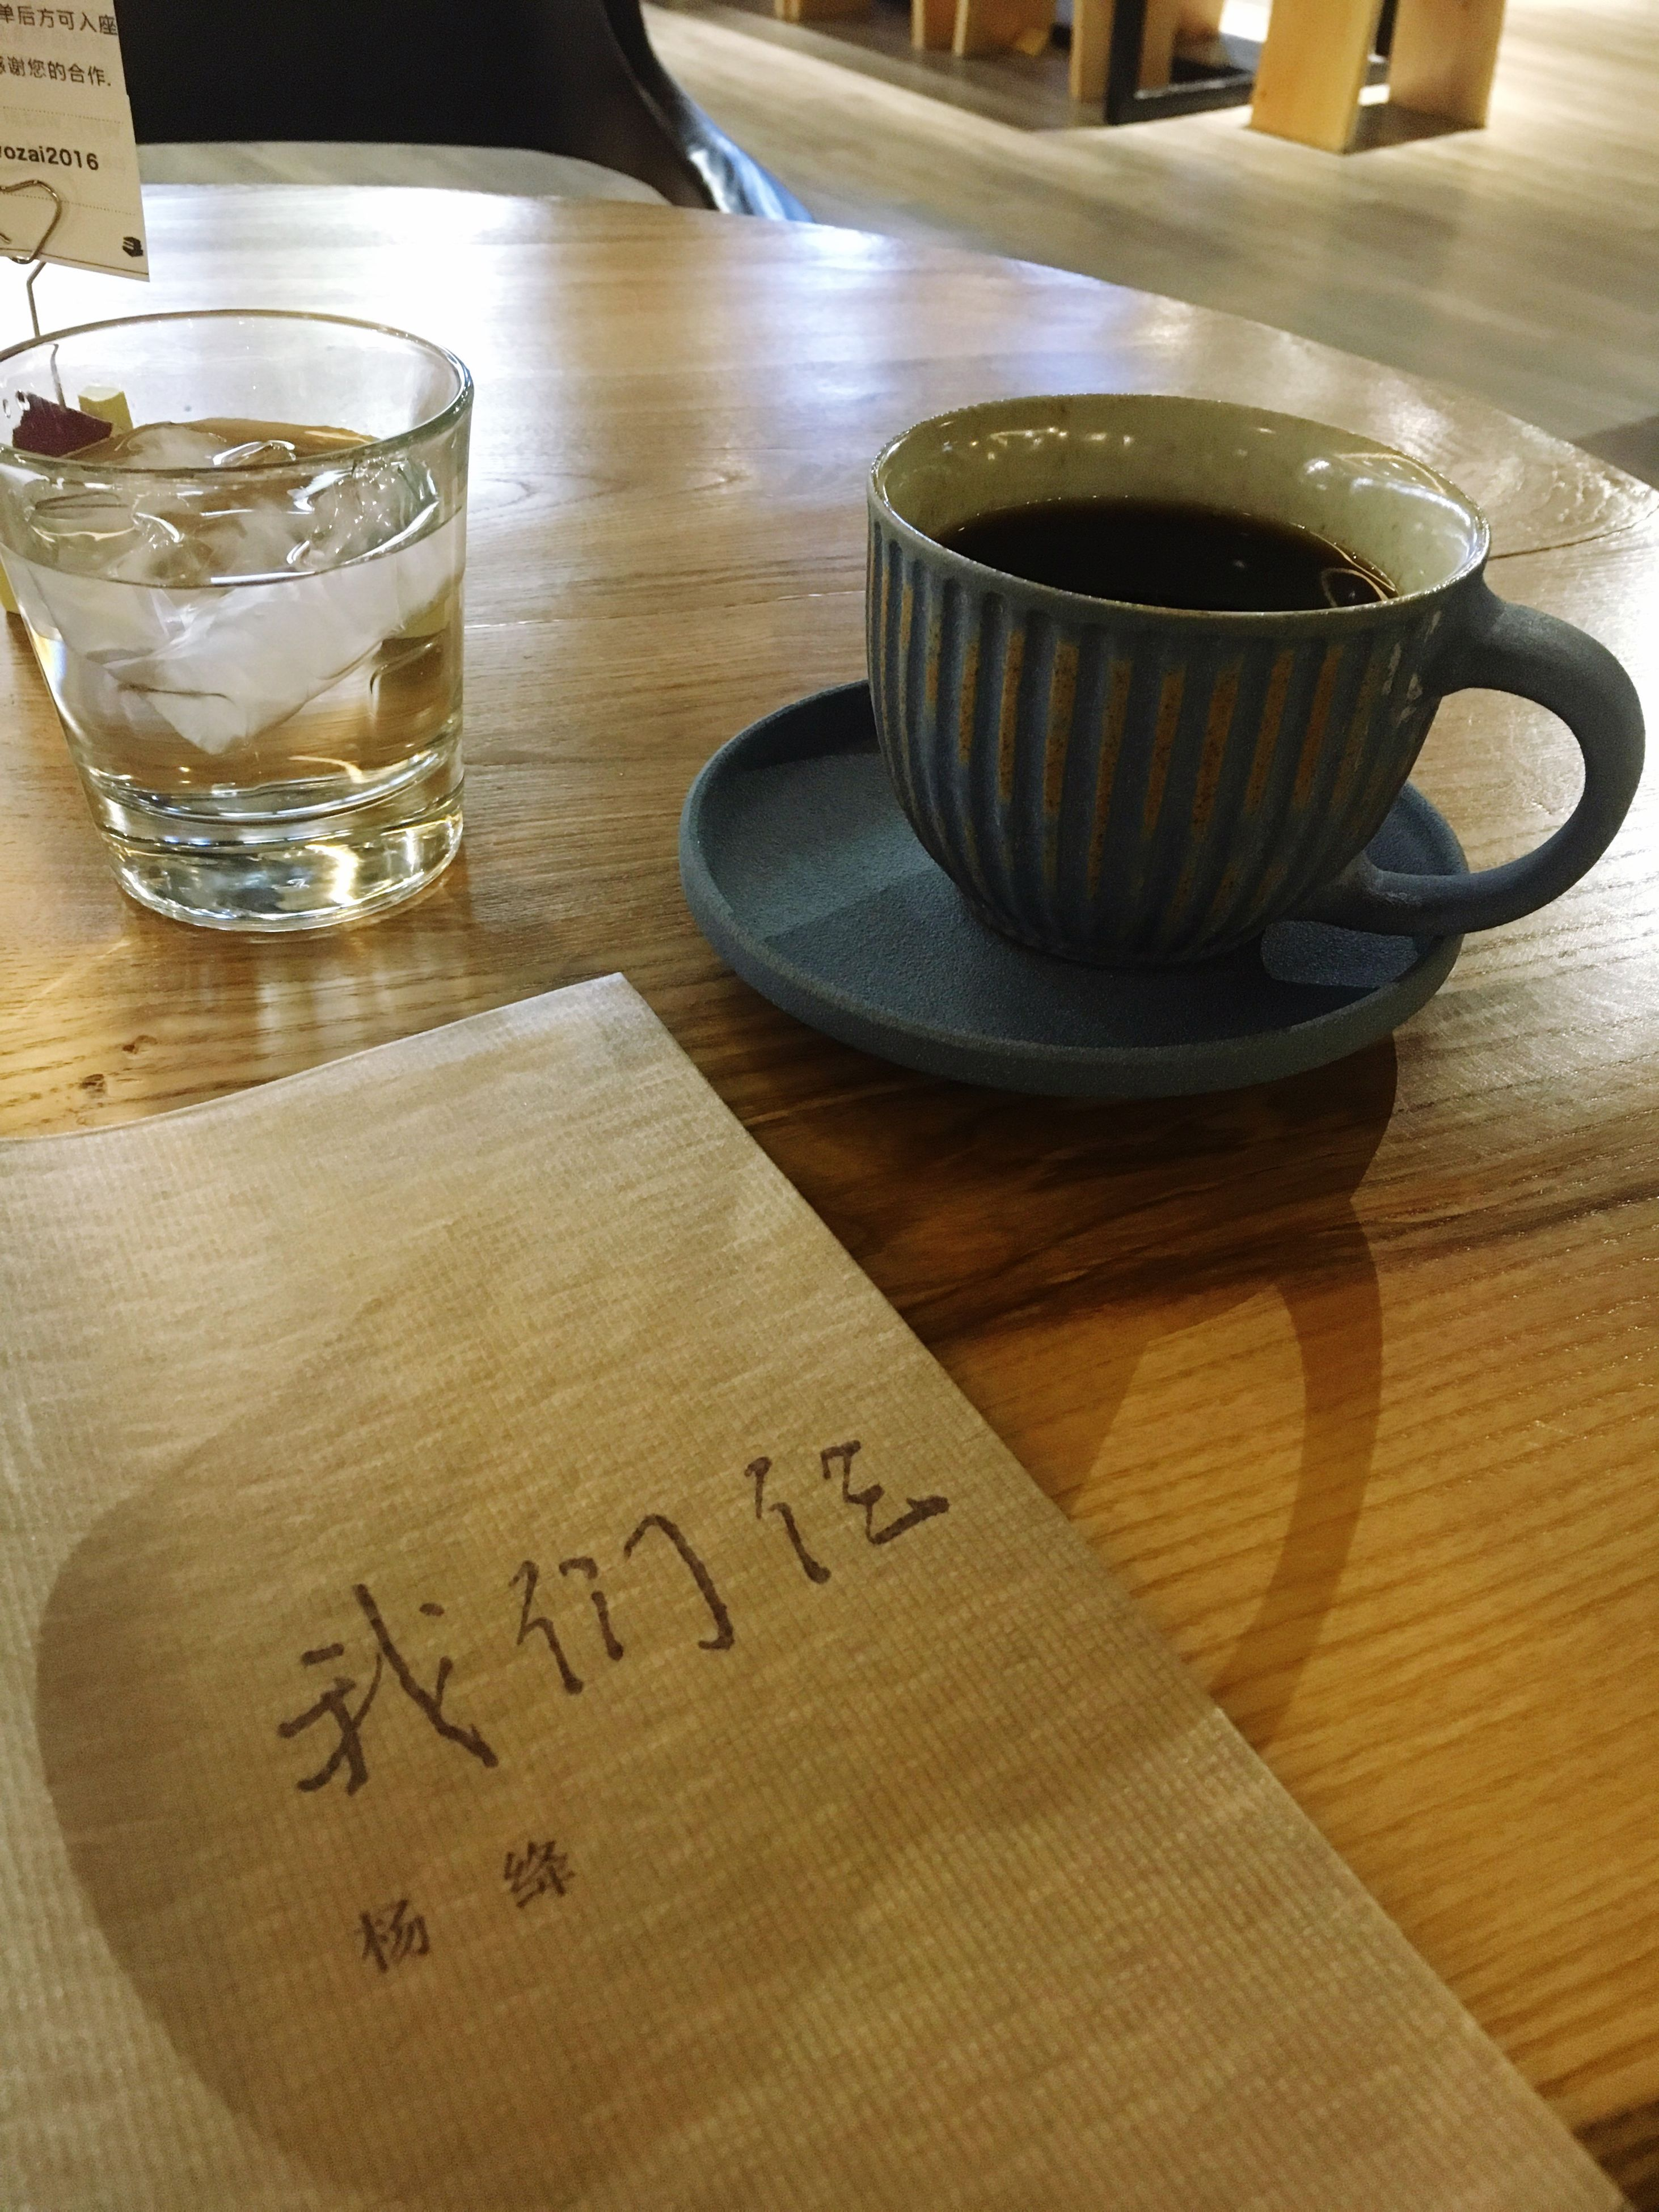 indoors, table, drink, food and drink, refreshment, still life, freshness, coffee cup, drinking glass, coffee - drink, close-up, text, western script, saucer, wood - material, no people, high angle view, cup, coffee, restaurant